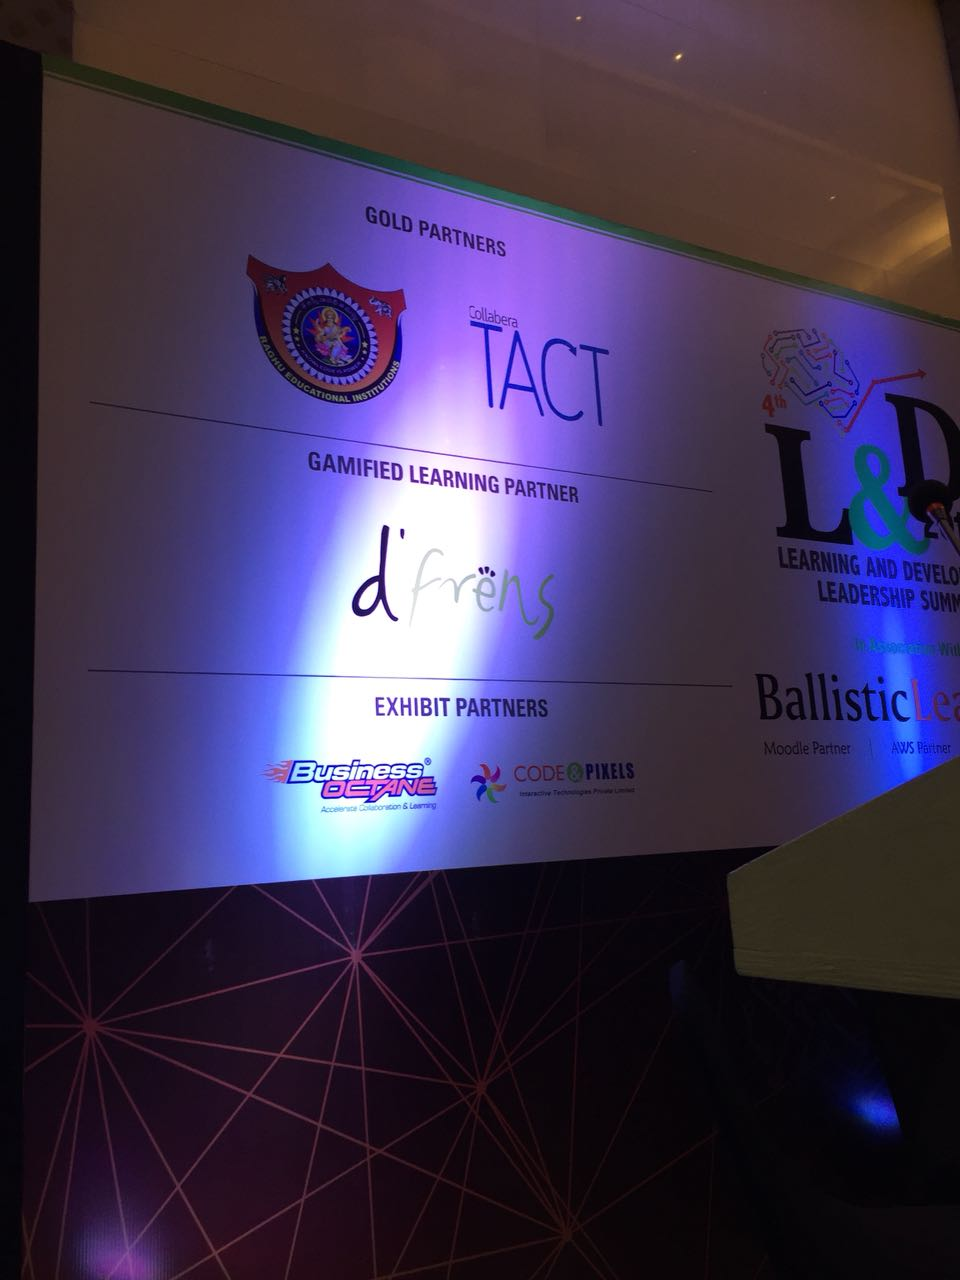 Day-1 at the Inventicon Learning and Development Event